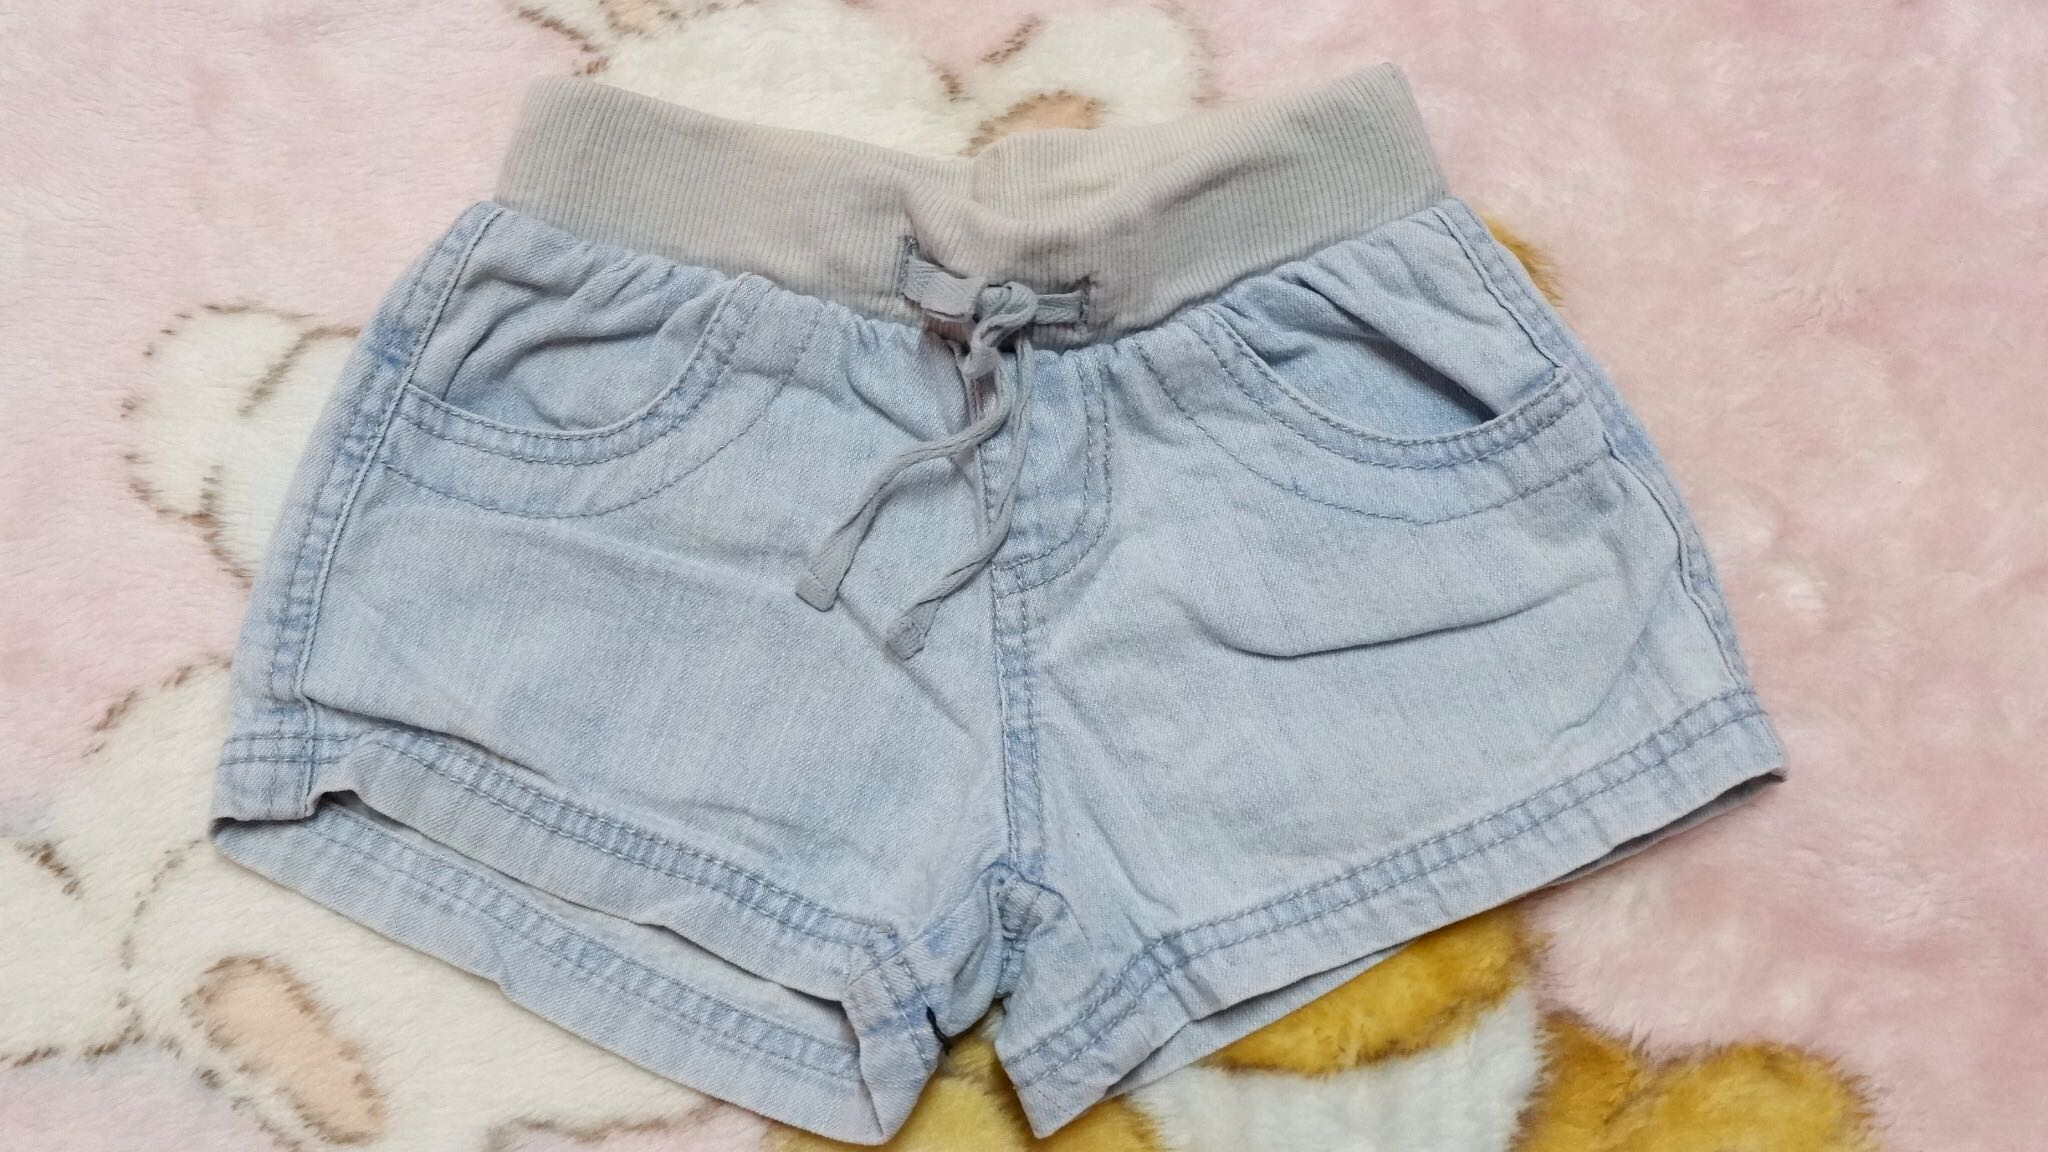 53132ed36a Faded glory shorts, Babies & Kids, Girls' Apparel on Carousell